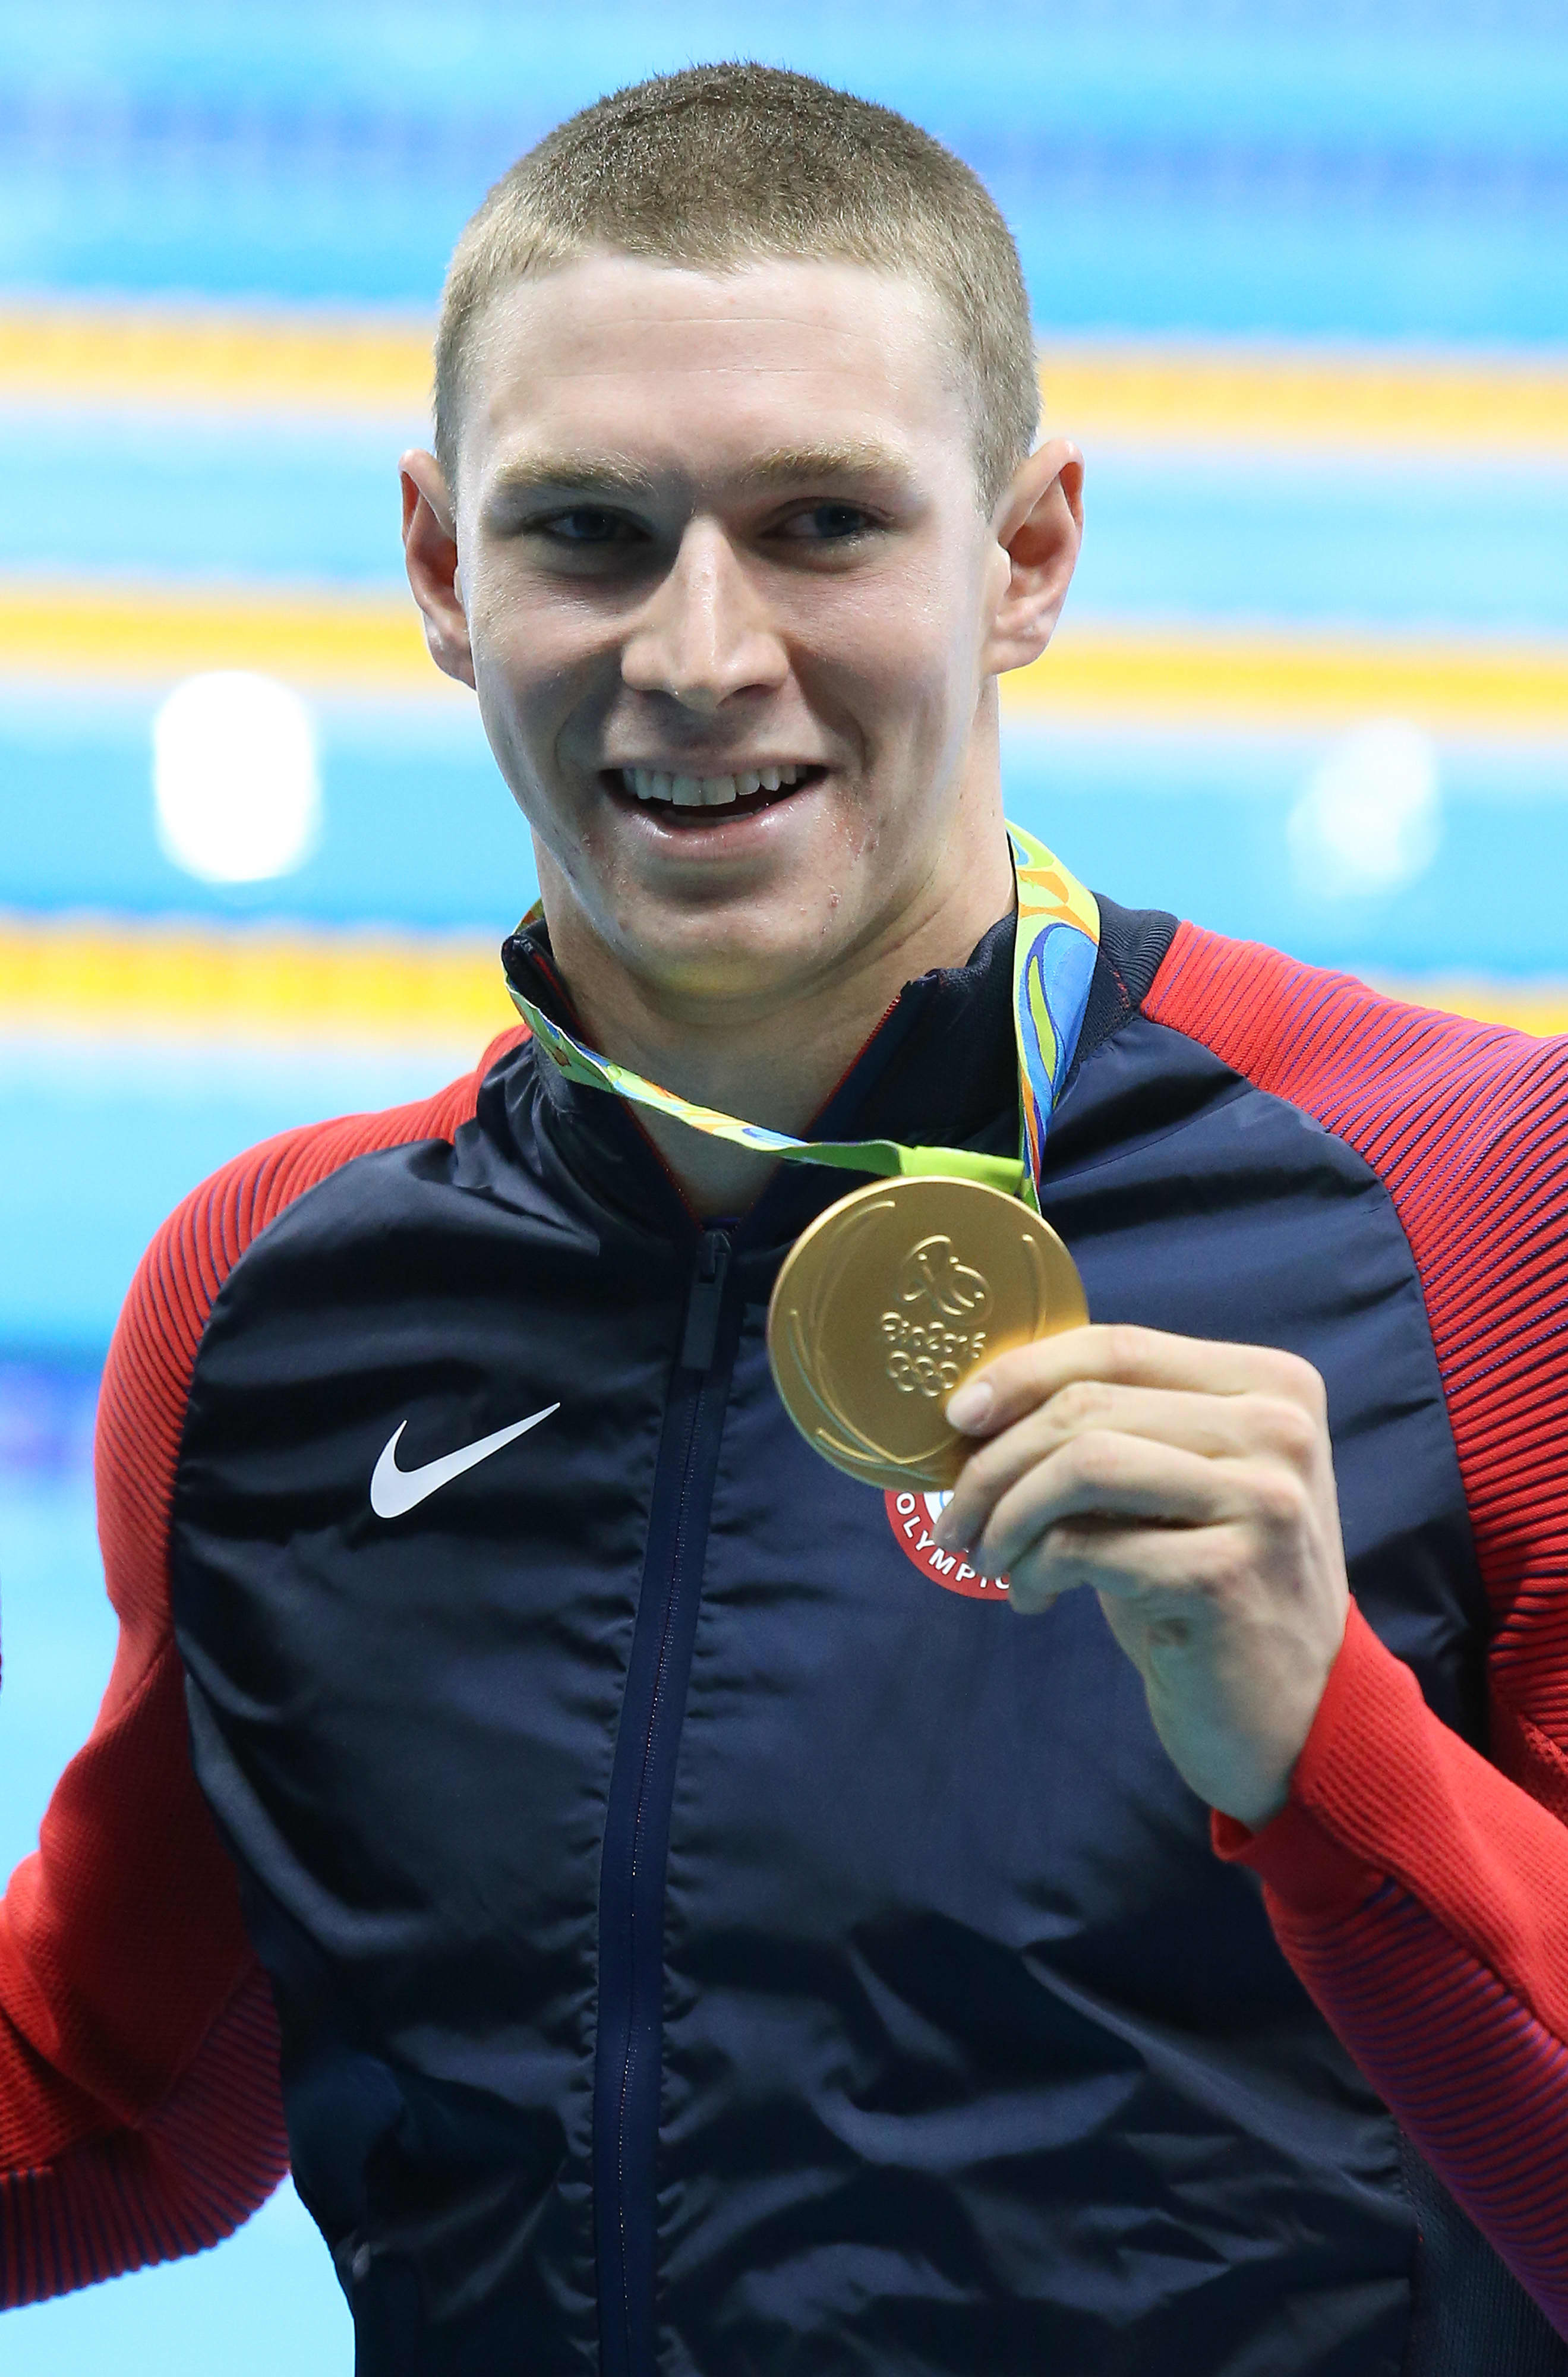 Olympic medalist Ryan Murphy: There's not enough being done to fight doping in swimming